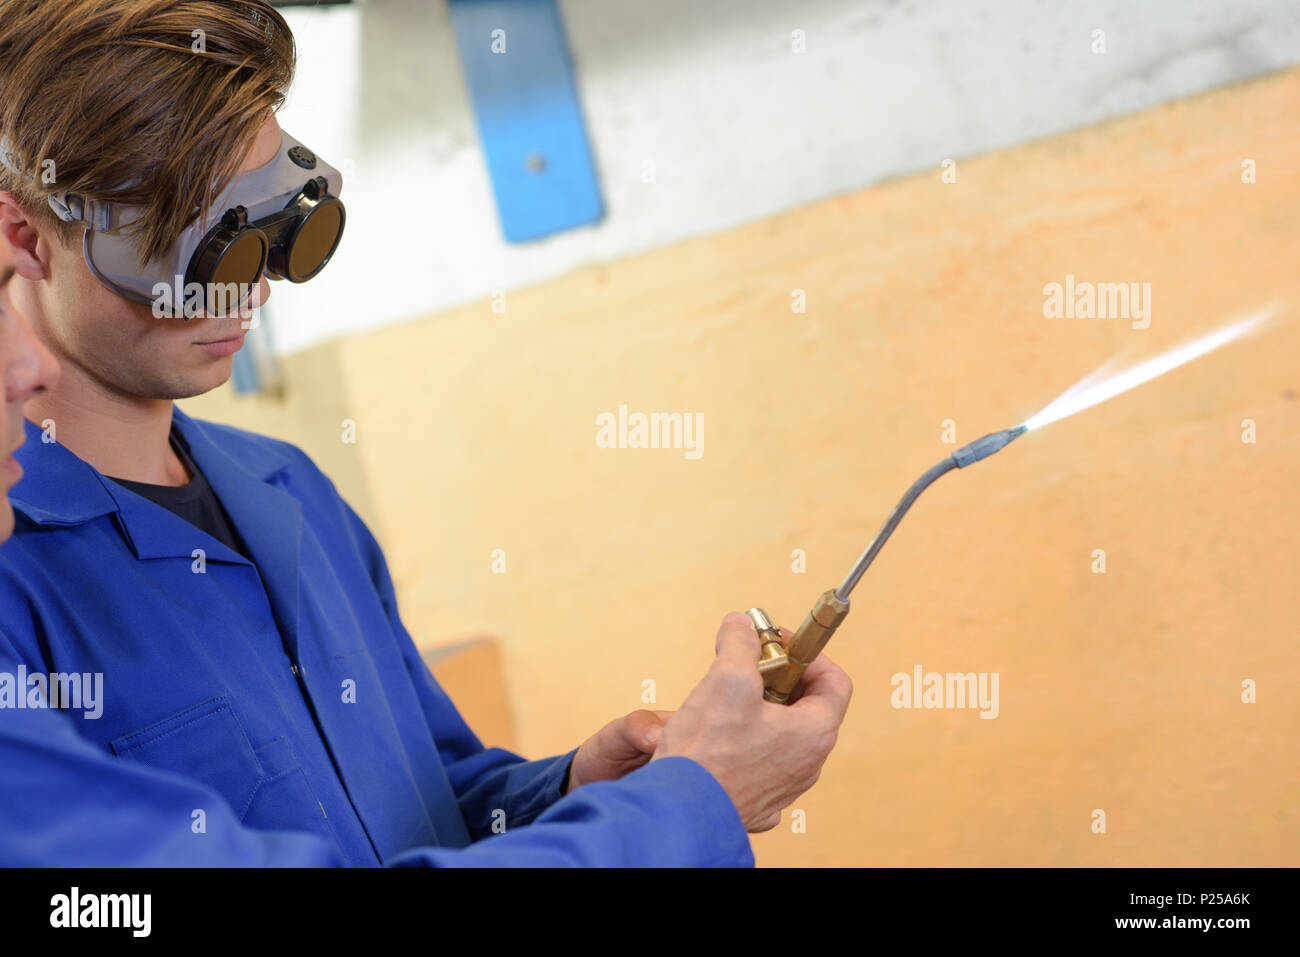 Soldering Joints Stock Photos & Soldering Joints Stock Images - Alamy